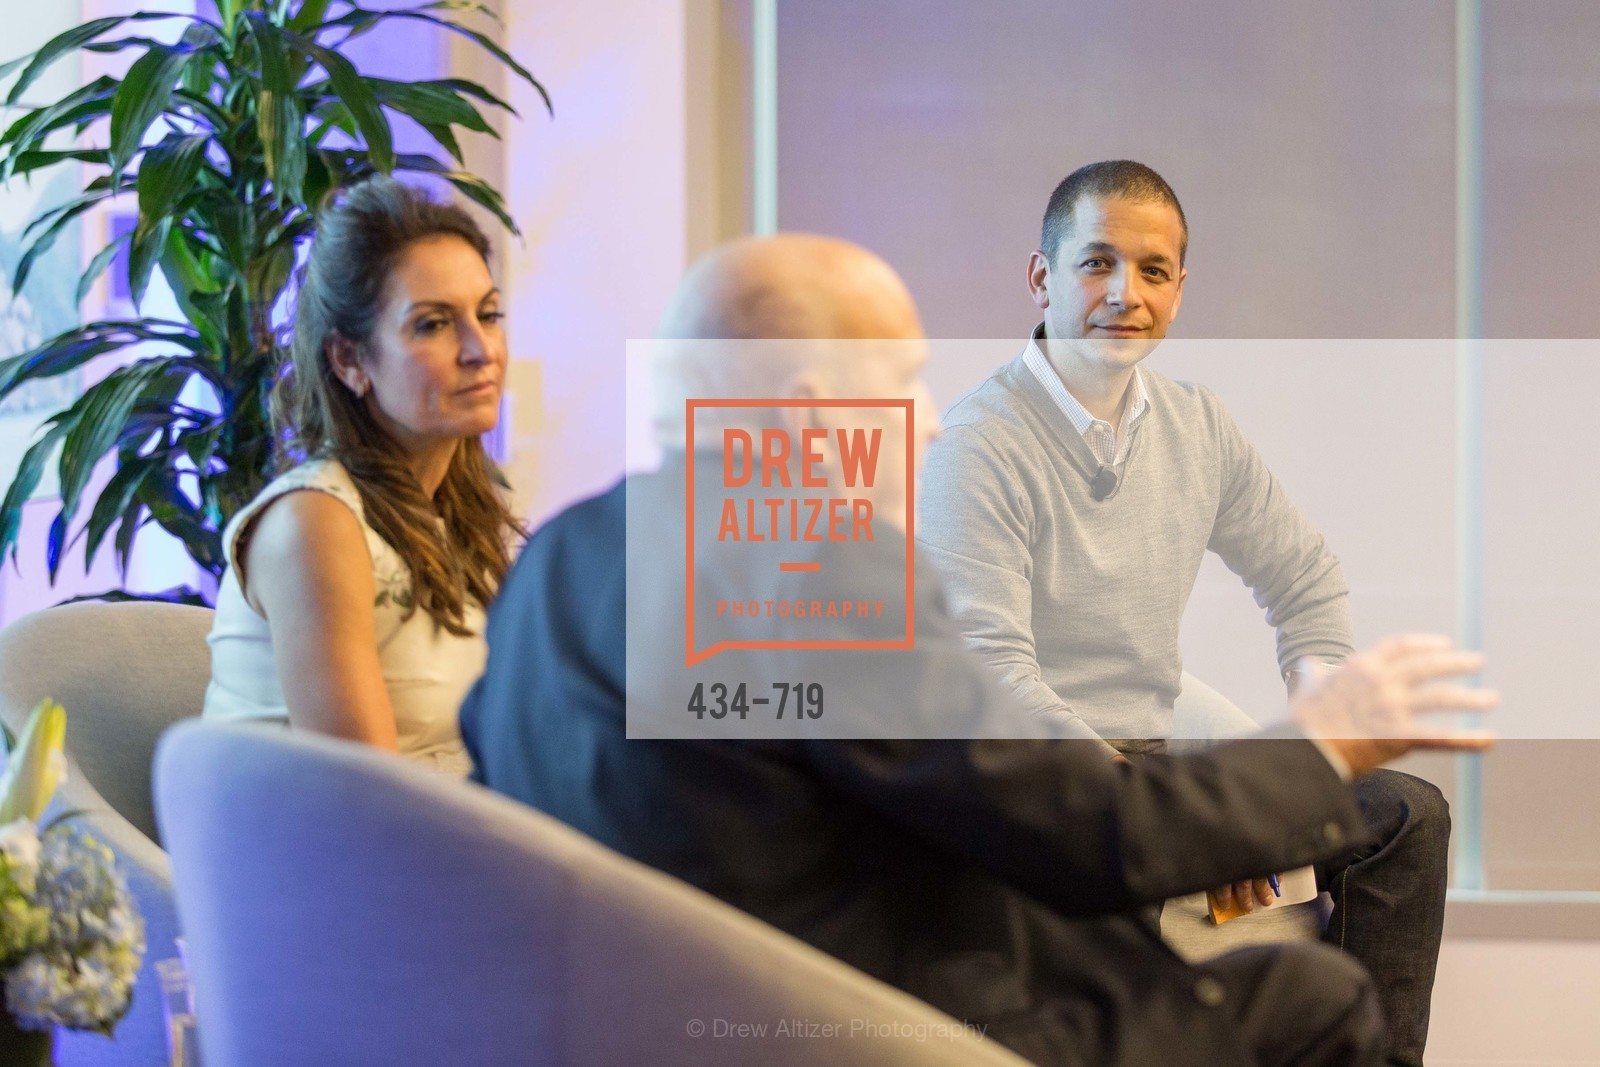 Suzy Welch, Dan Roth, THE LINKEDIN Discussion Series featuring Jack and Suzy Welch with LinkedIn Executive Editor Dan Roth, US, May 11th, 2015,Drew Altizer, Drew Altizer Photography, full-service agency, private events, San Francisco photographer, photographer california